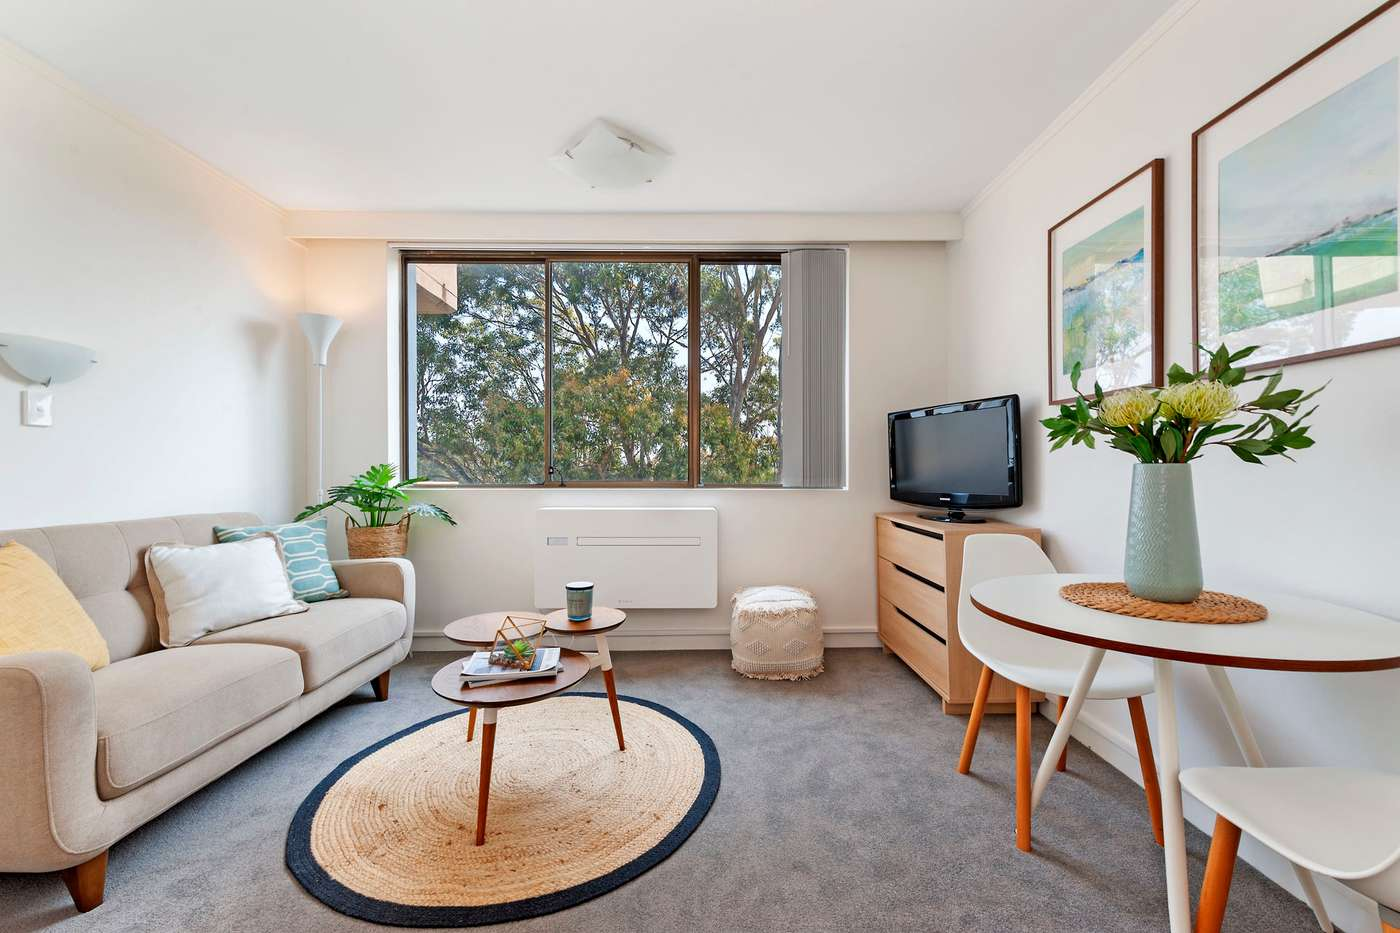 Main view of Homely apartment listing, 111/450 Pacific Highway, Lane Cove North, NSW 2066